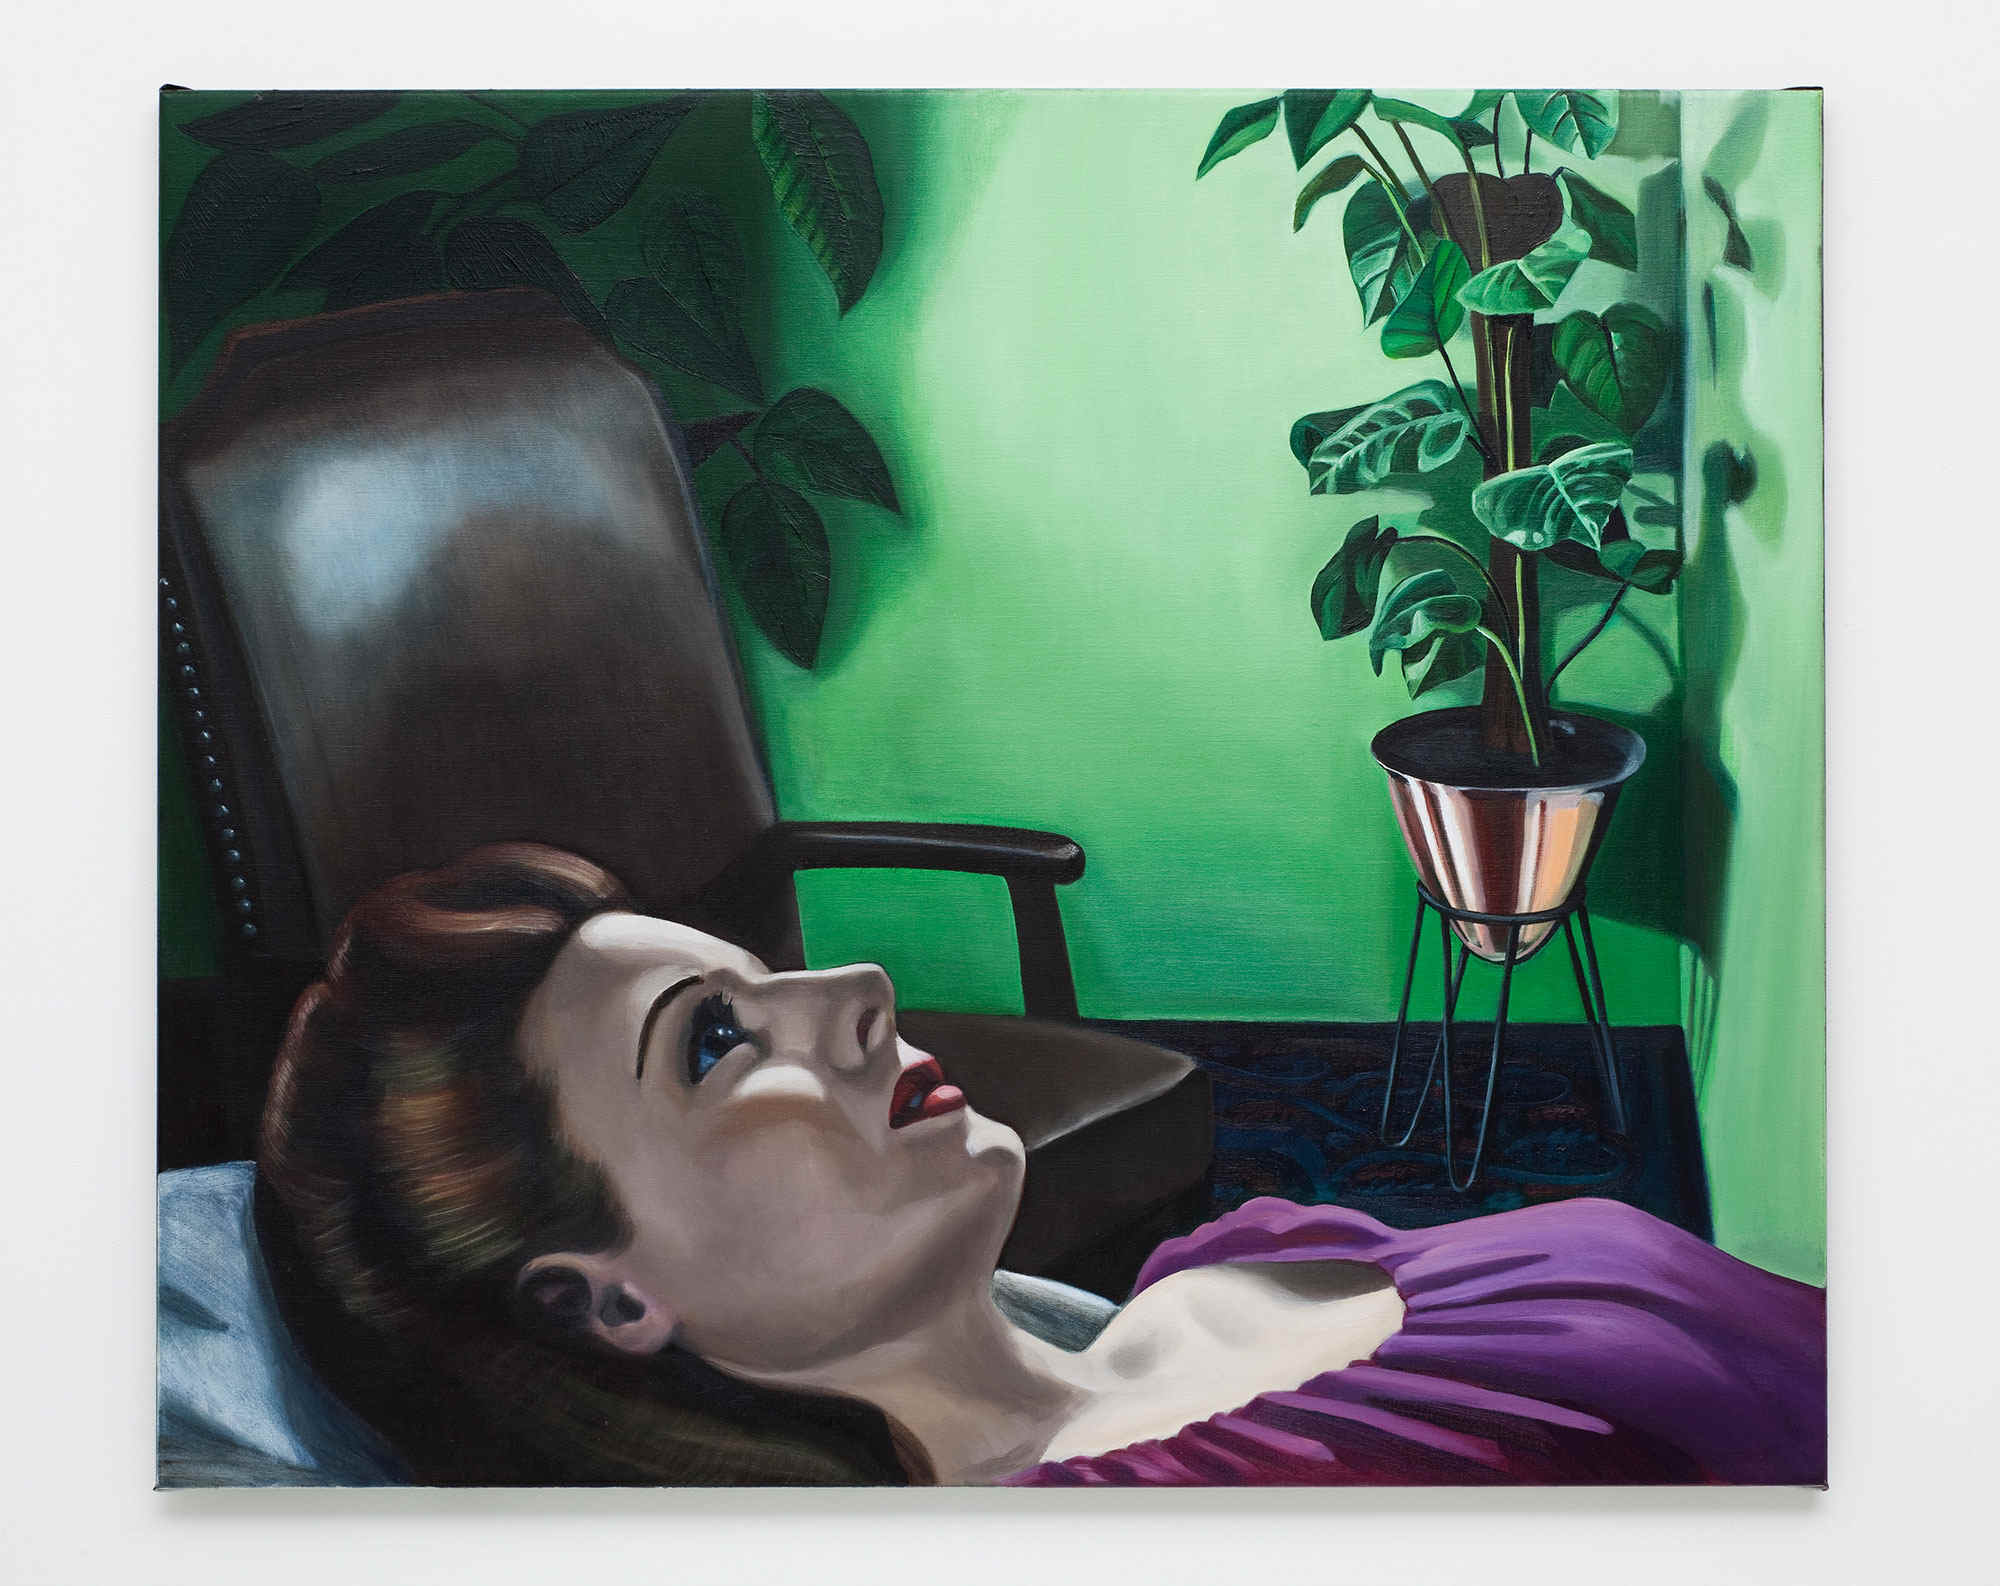 Anne WALLACE 'Talking Cure' 2010 | oil on canvas | Collection of Brisbane Girls Grammar School, Brisbane